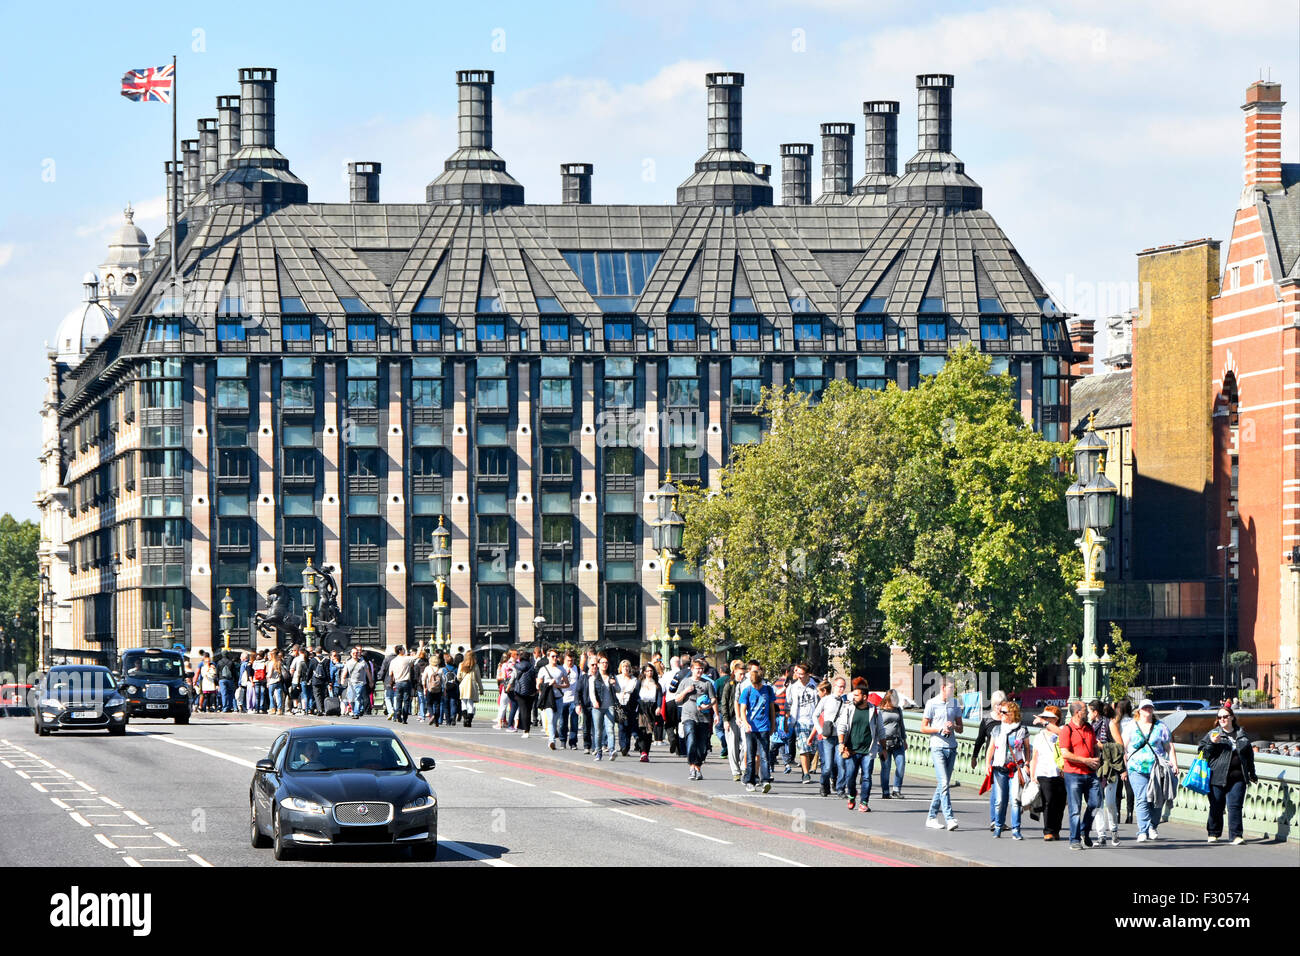 Portcullis house London office complex for UK members of Parliament with tourists walking along Westminster Bridge pavement England UK Stock Photo